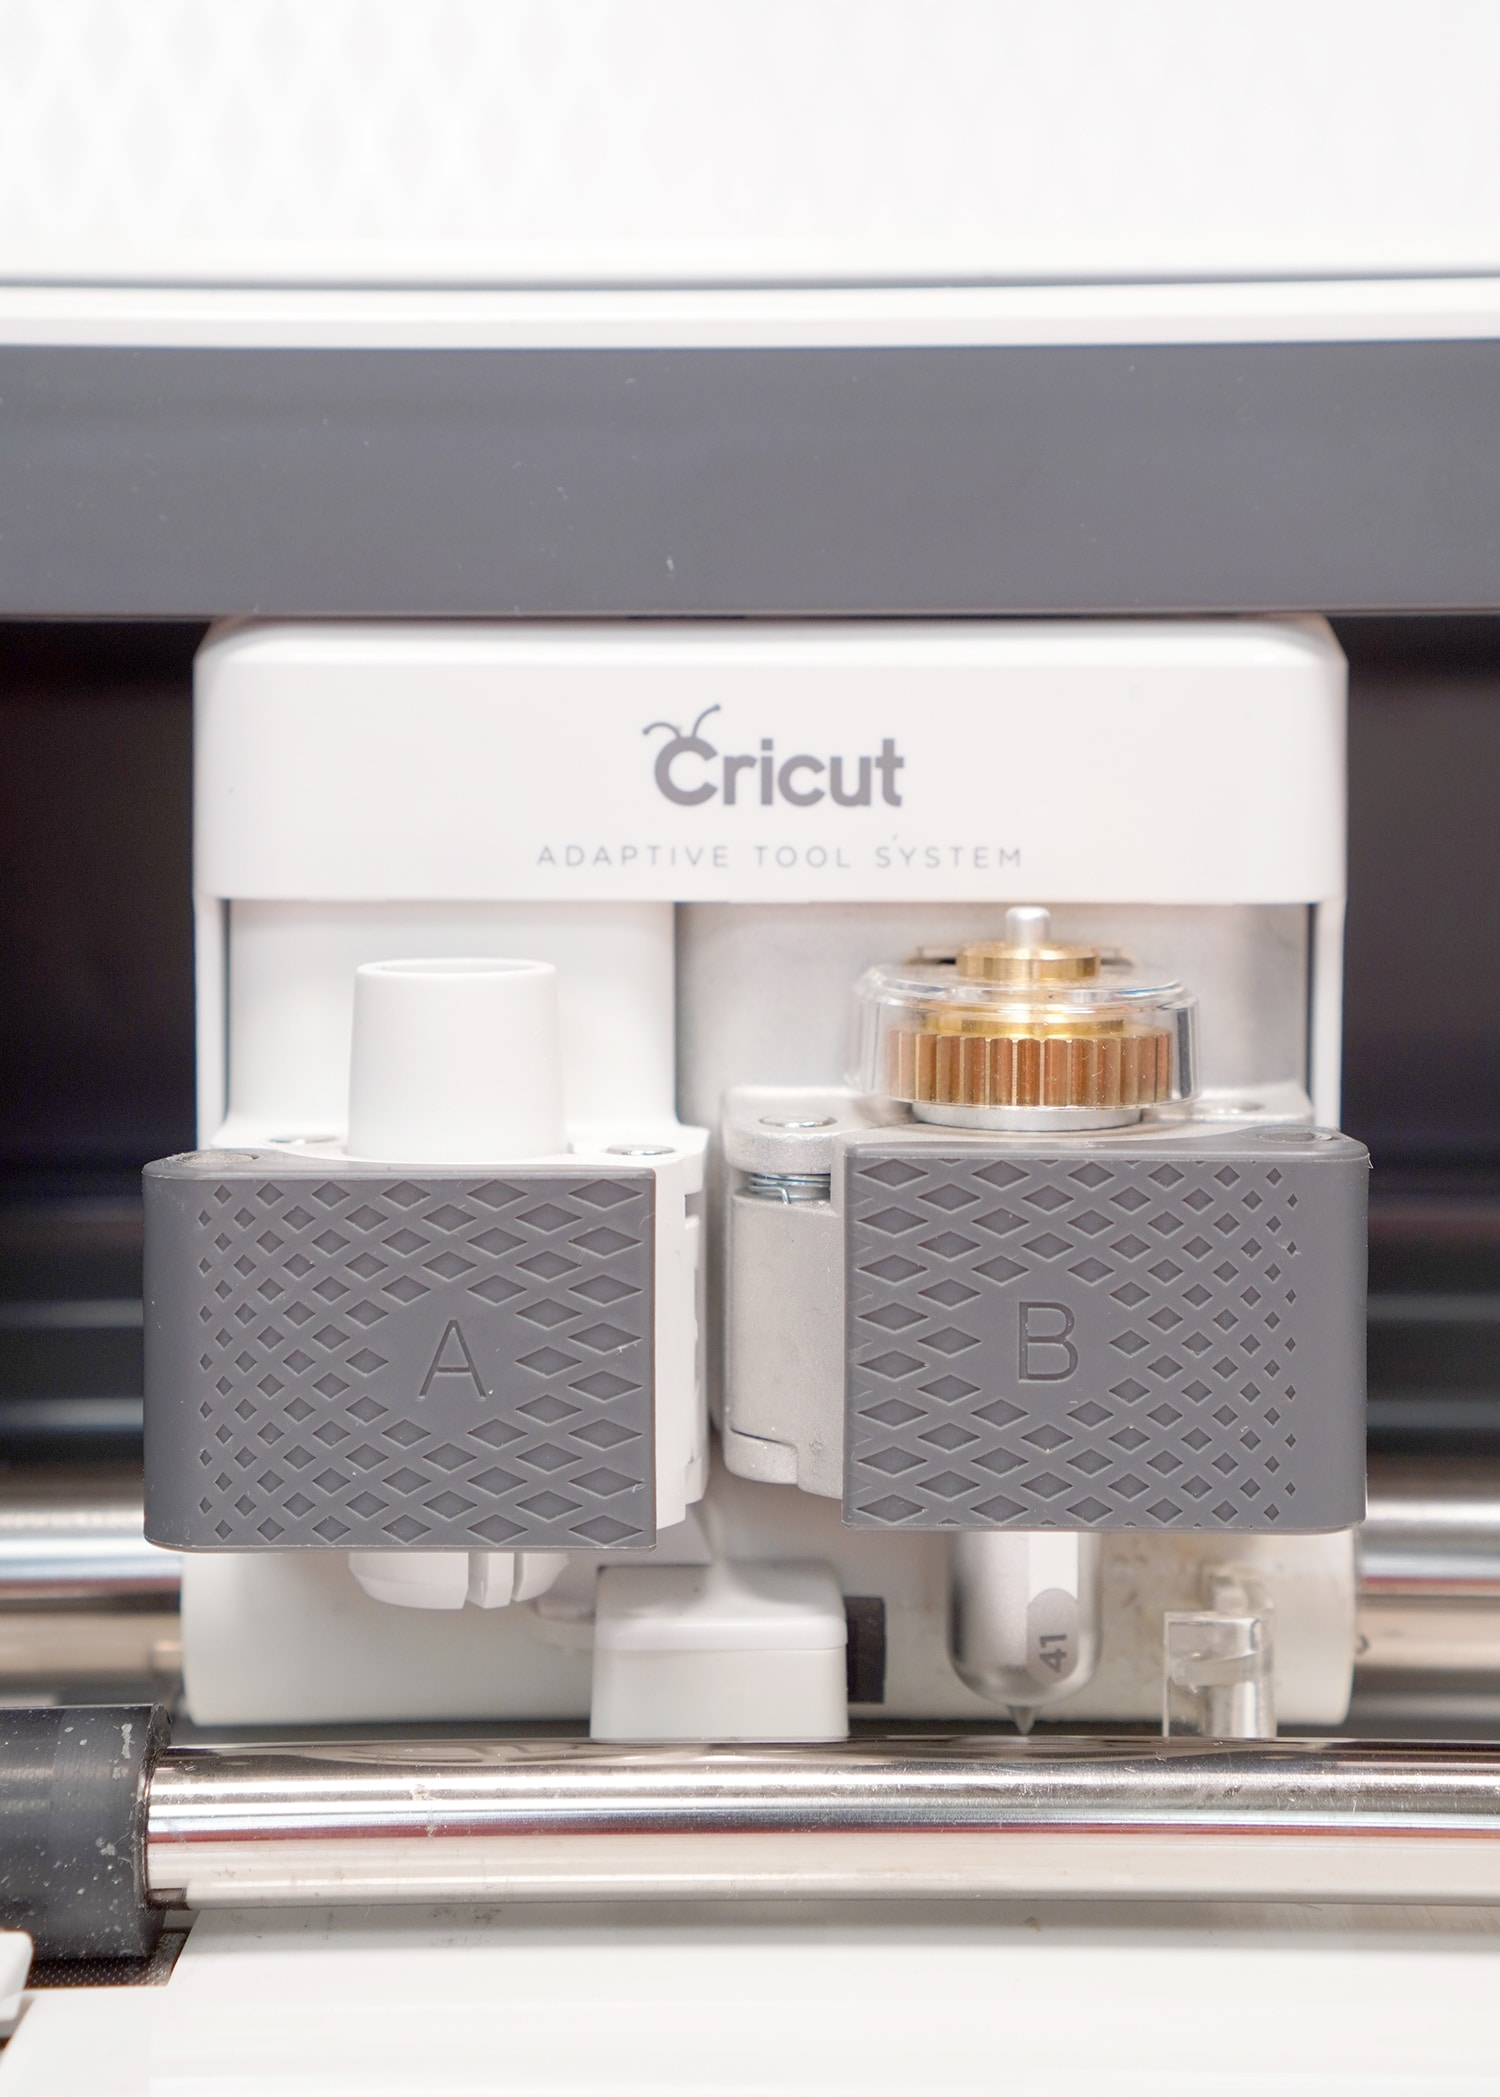 Cricut Maker tool carrier with QuickSwap Housing and Engraving Tip Tool